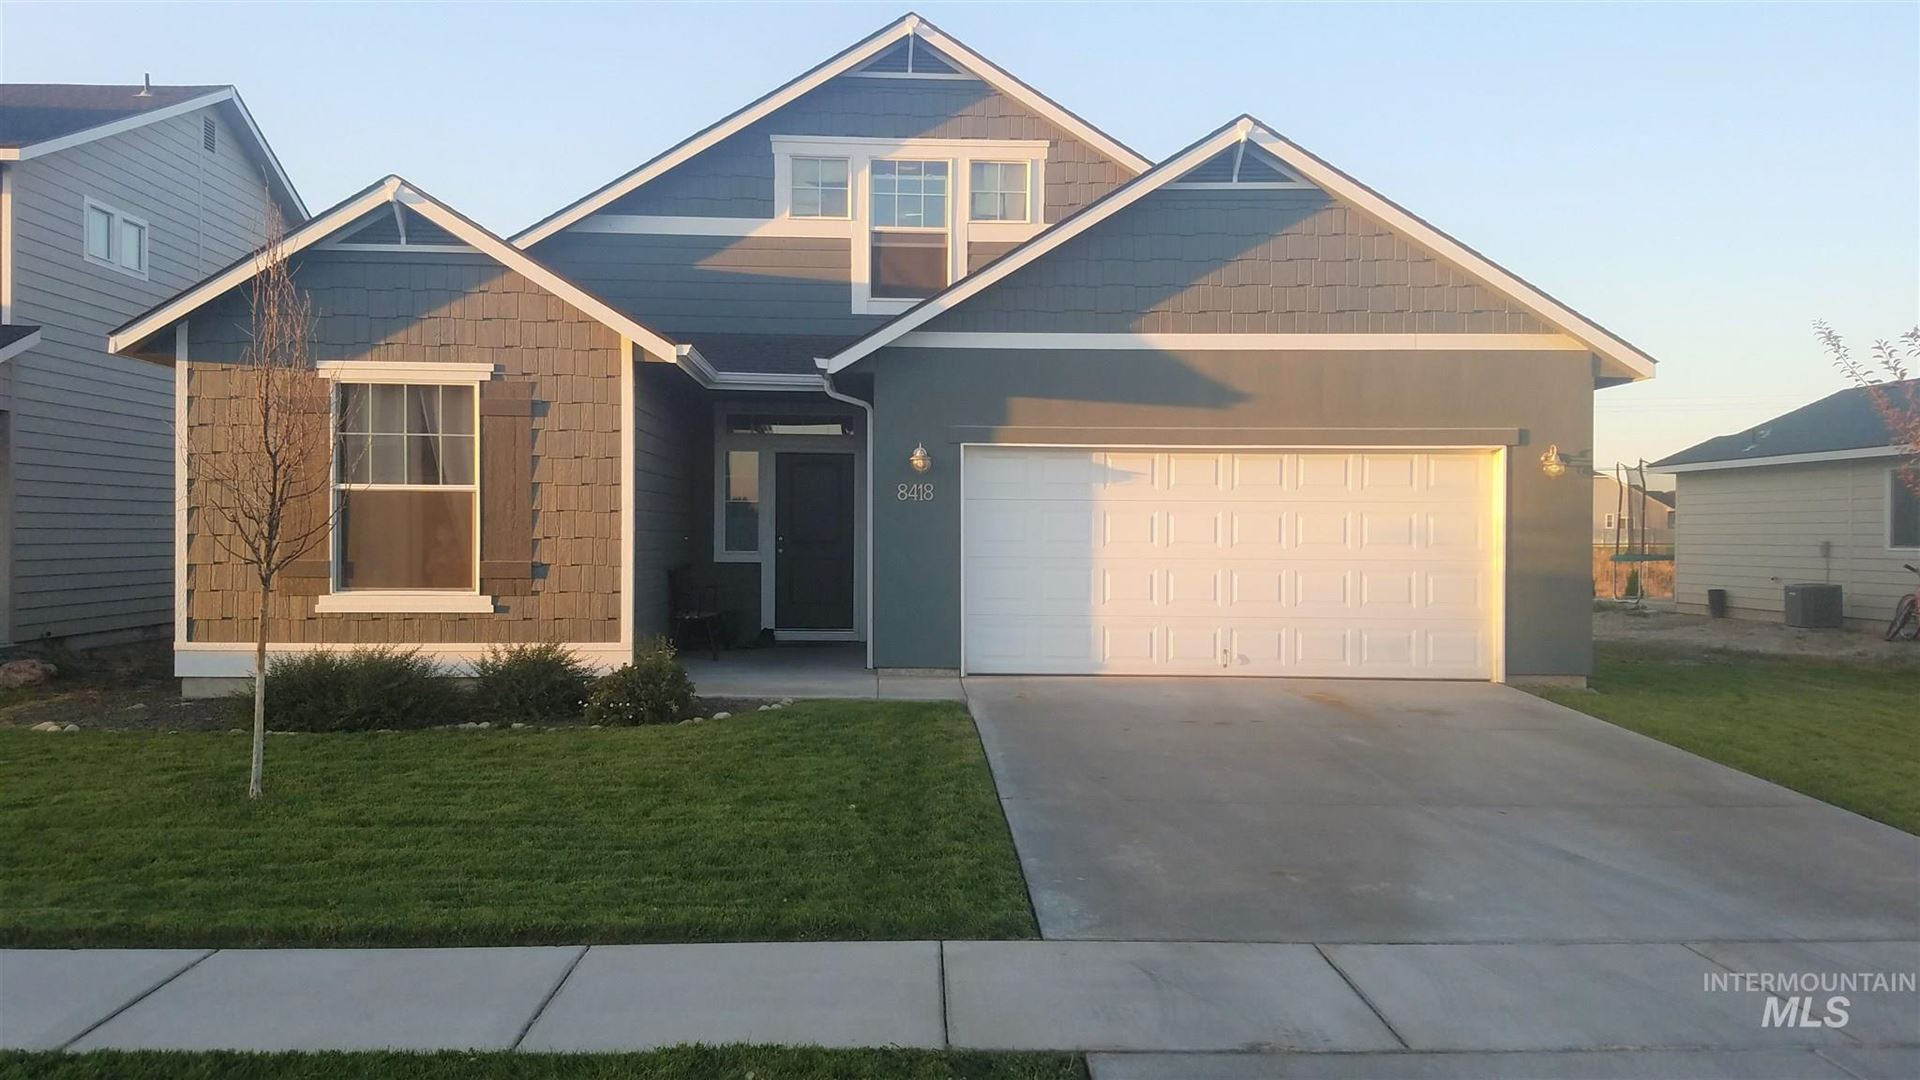 Photo of 8418 E Rathdrum Dr., Nampa, ID 83687 (MLS # 98784517)